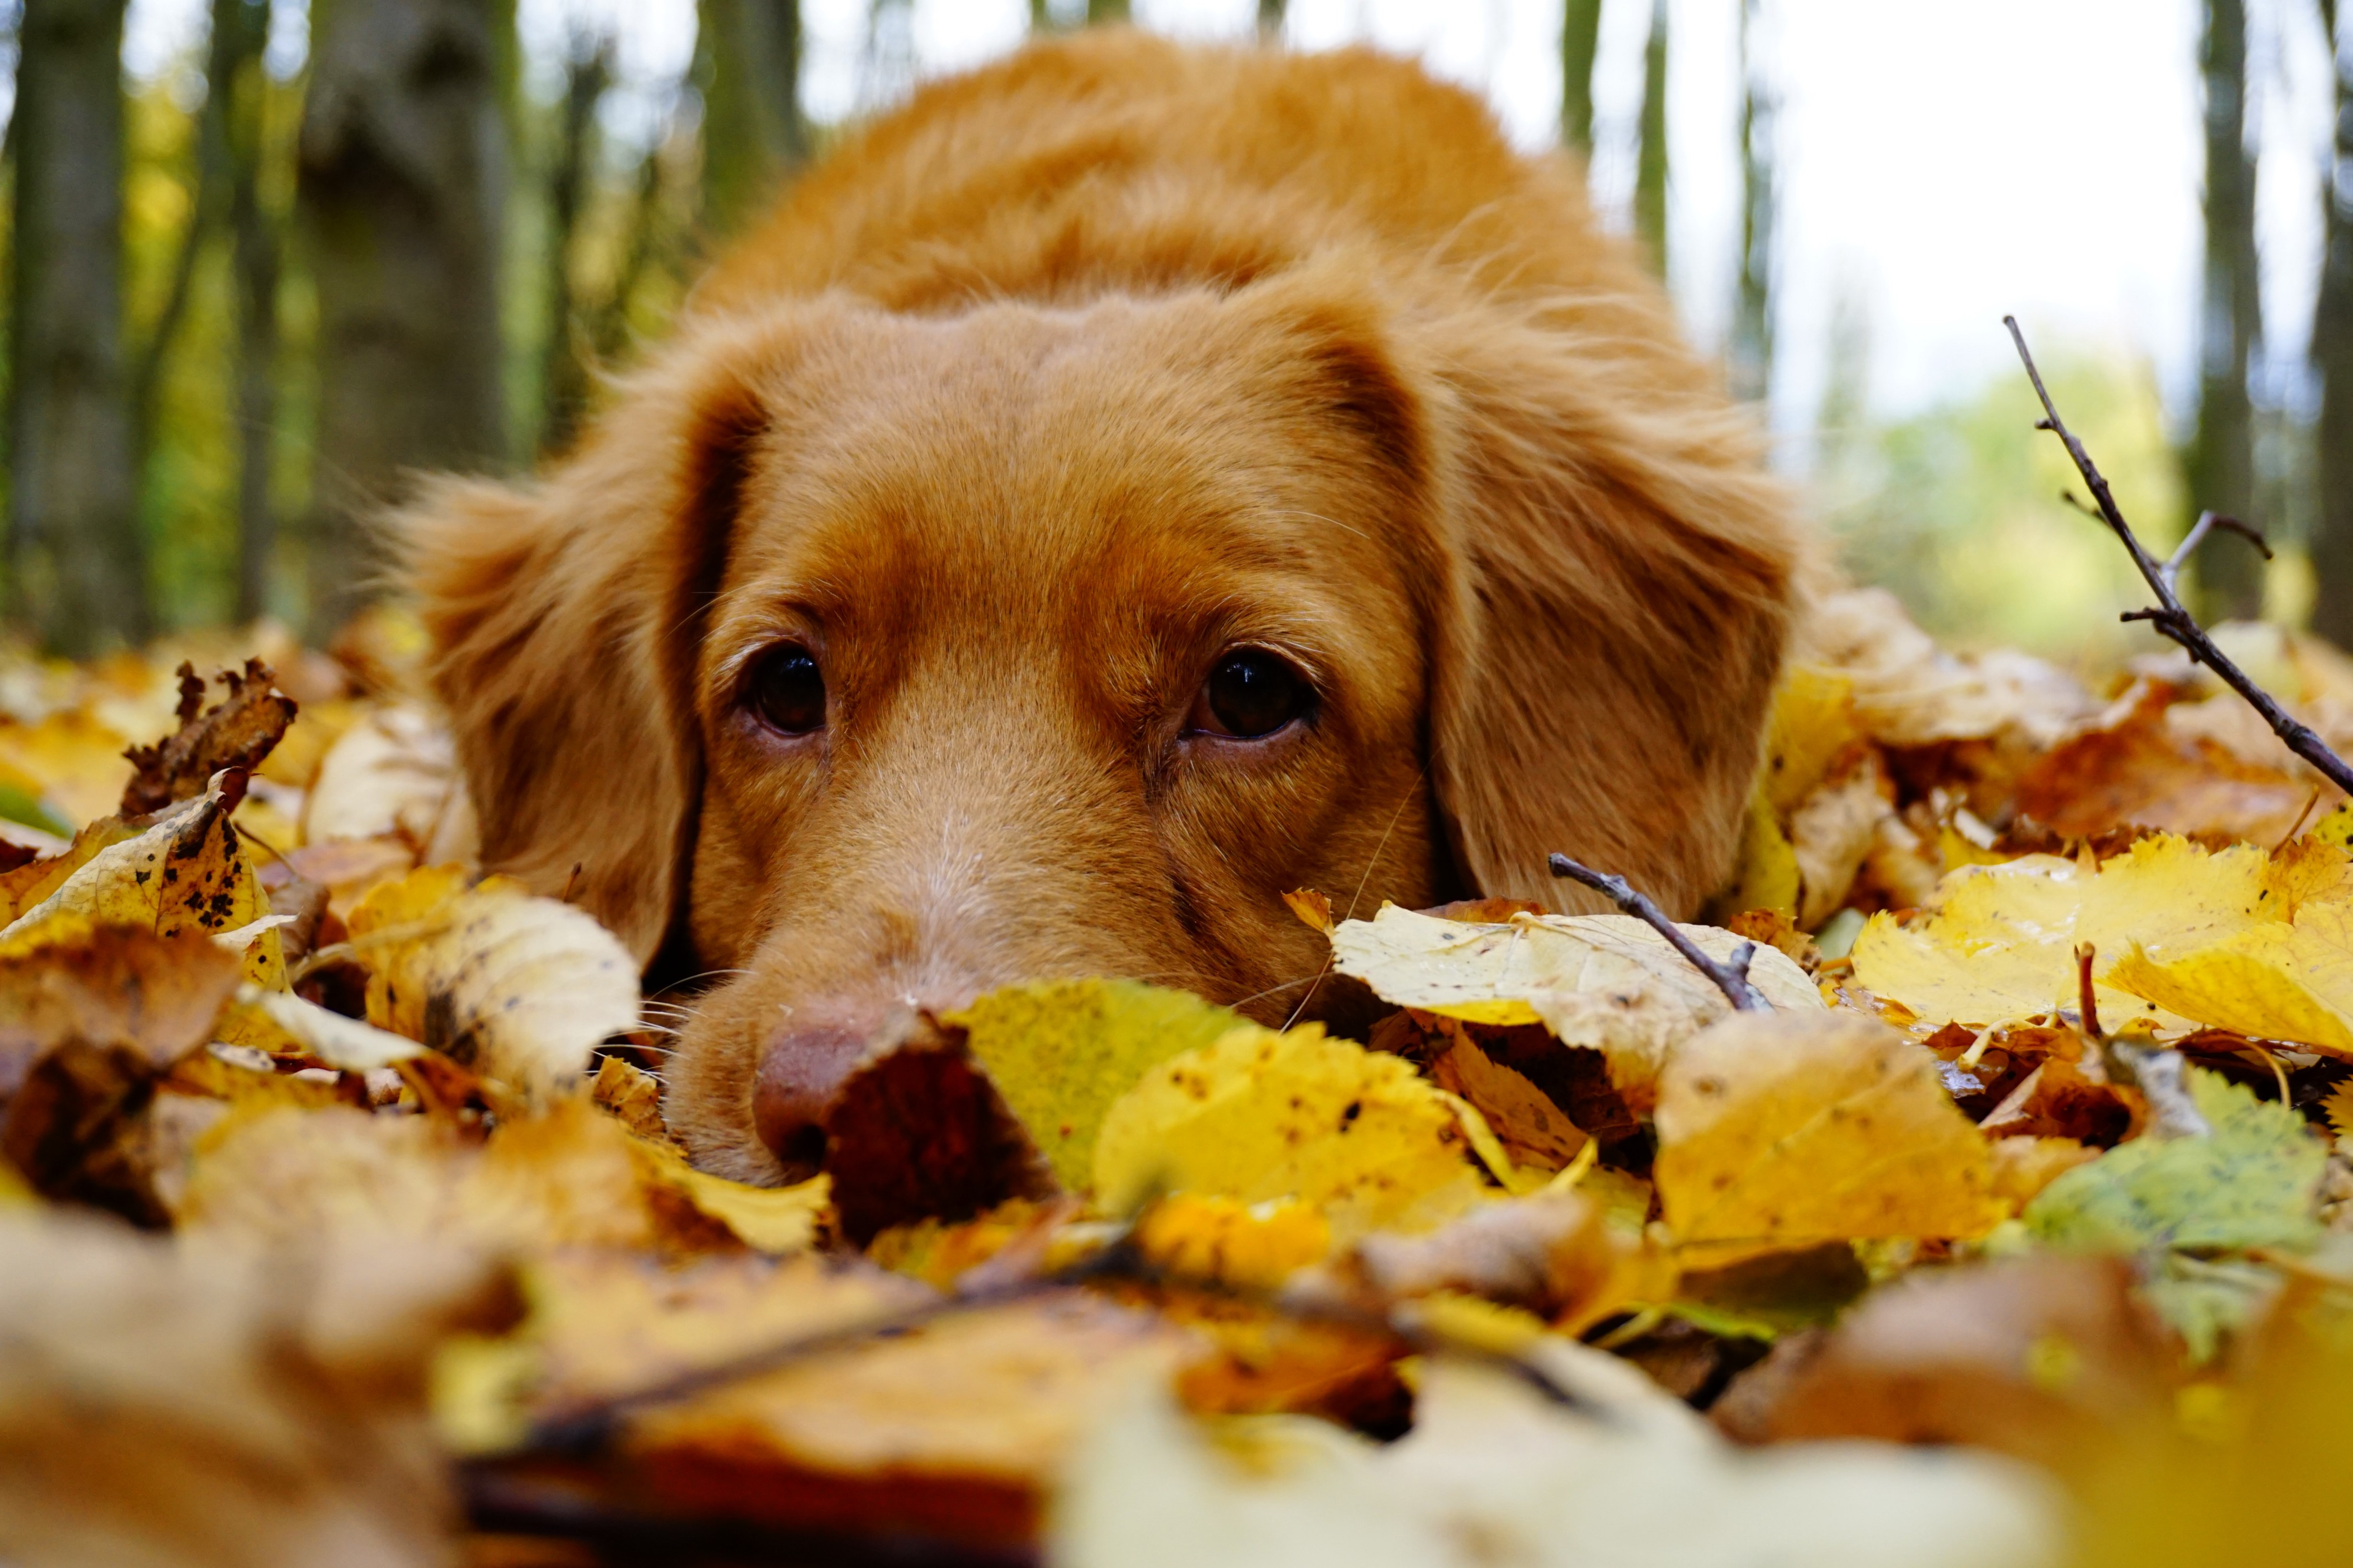 Sad brown eyed dog laying on the colored leaves of fall in the outdoors.